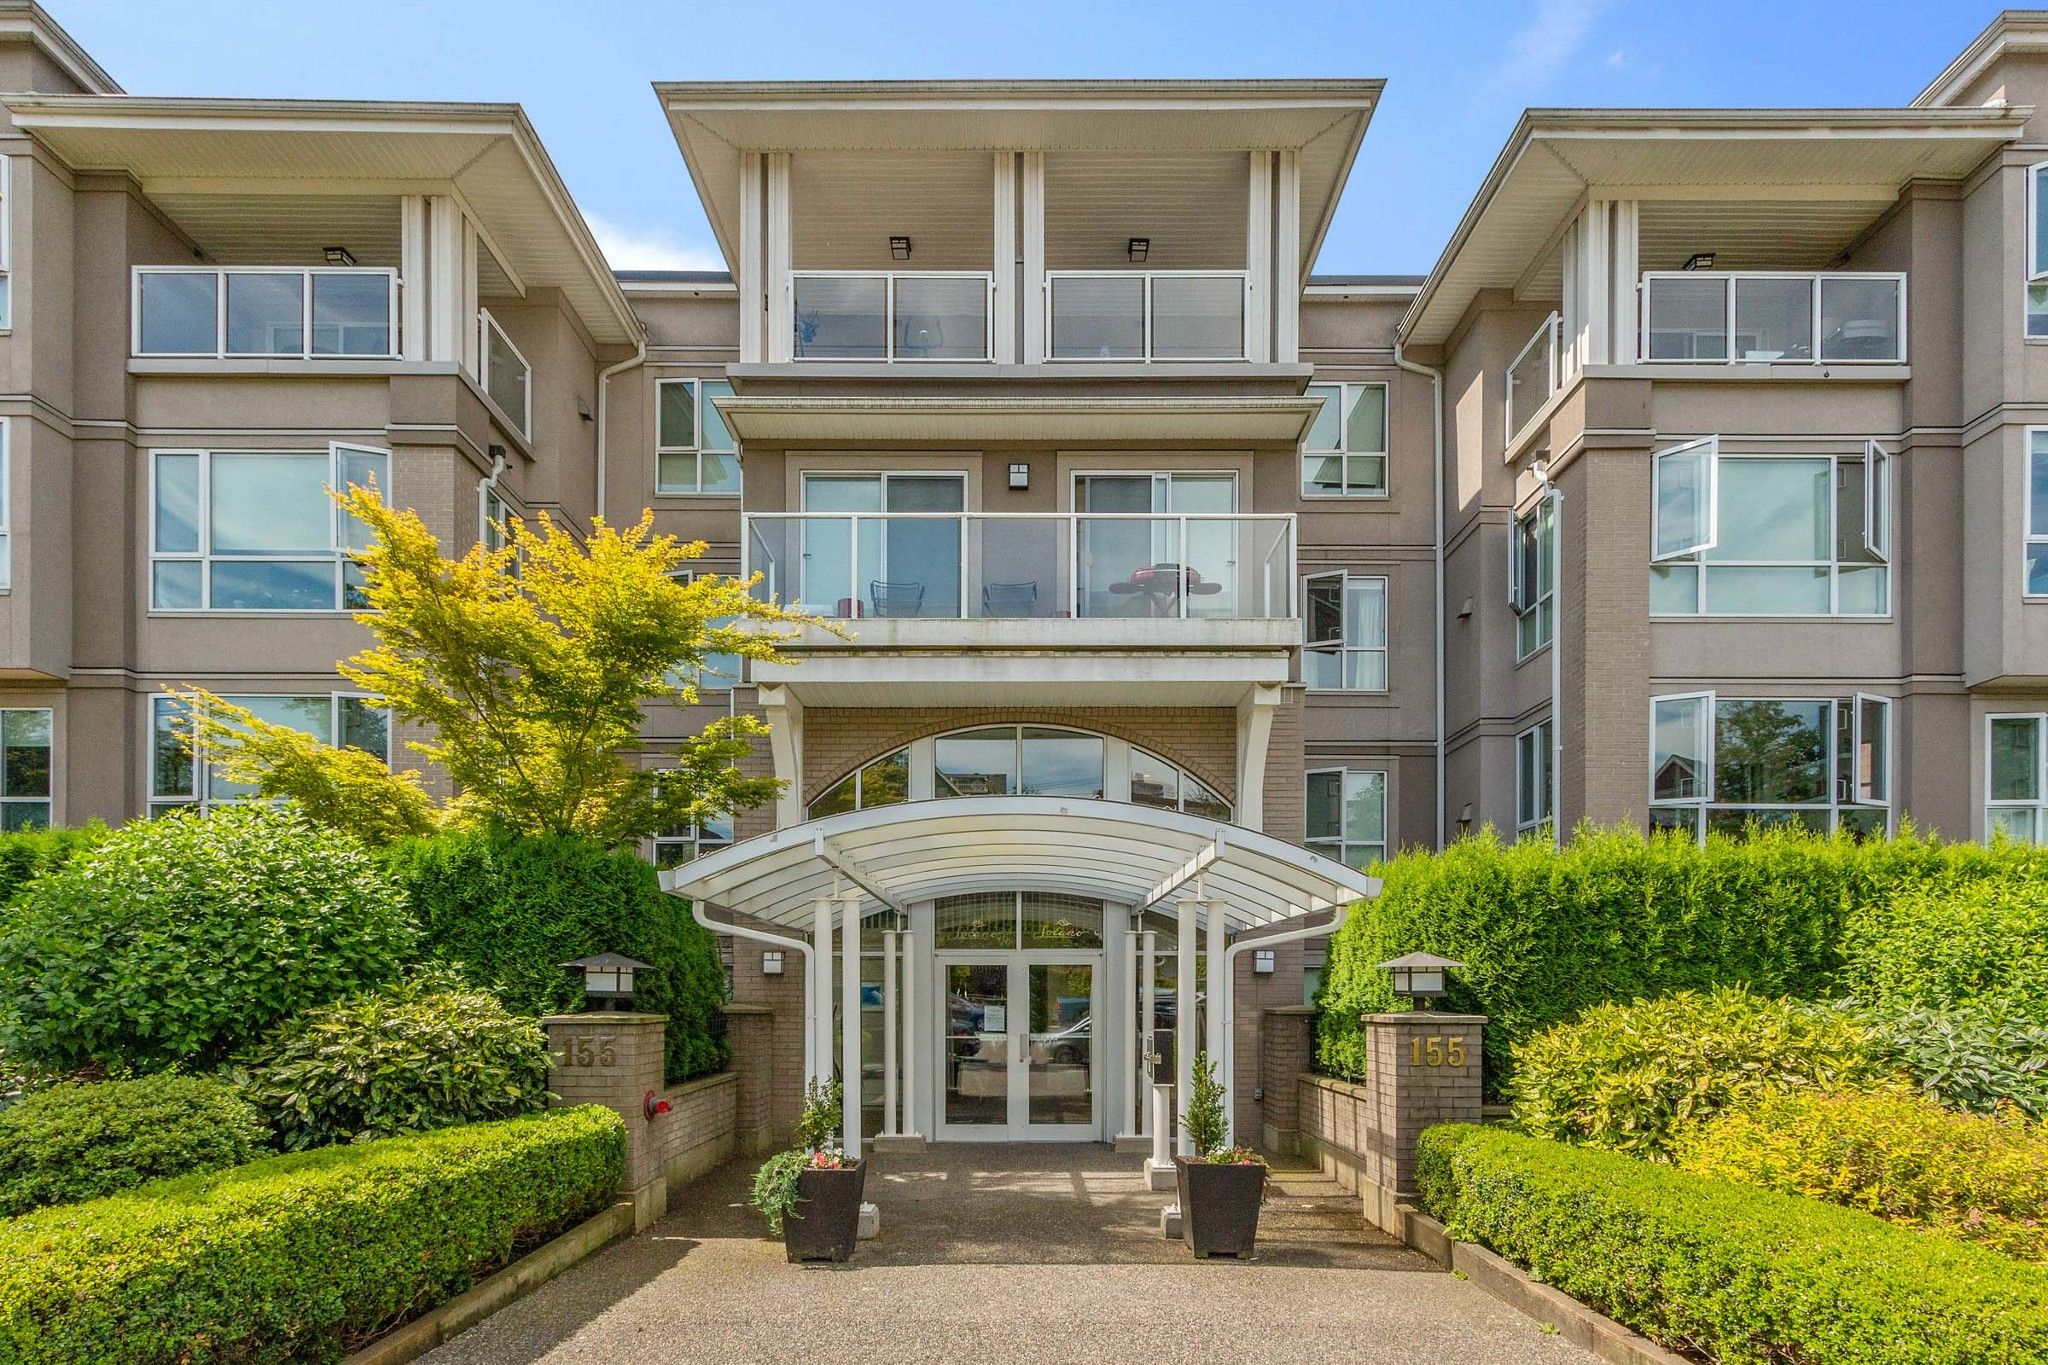 """Main Photo: 111 155 E 3RD Street in North Vancouver: Lower Lonsdale Condo for sale in """"The Solano"""" : MLS®# R2596200"""